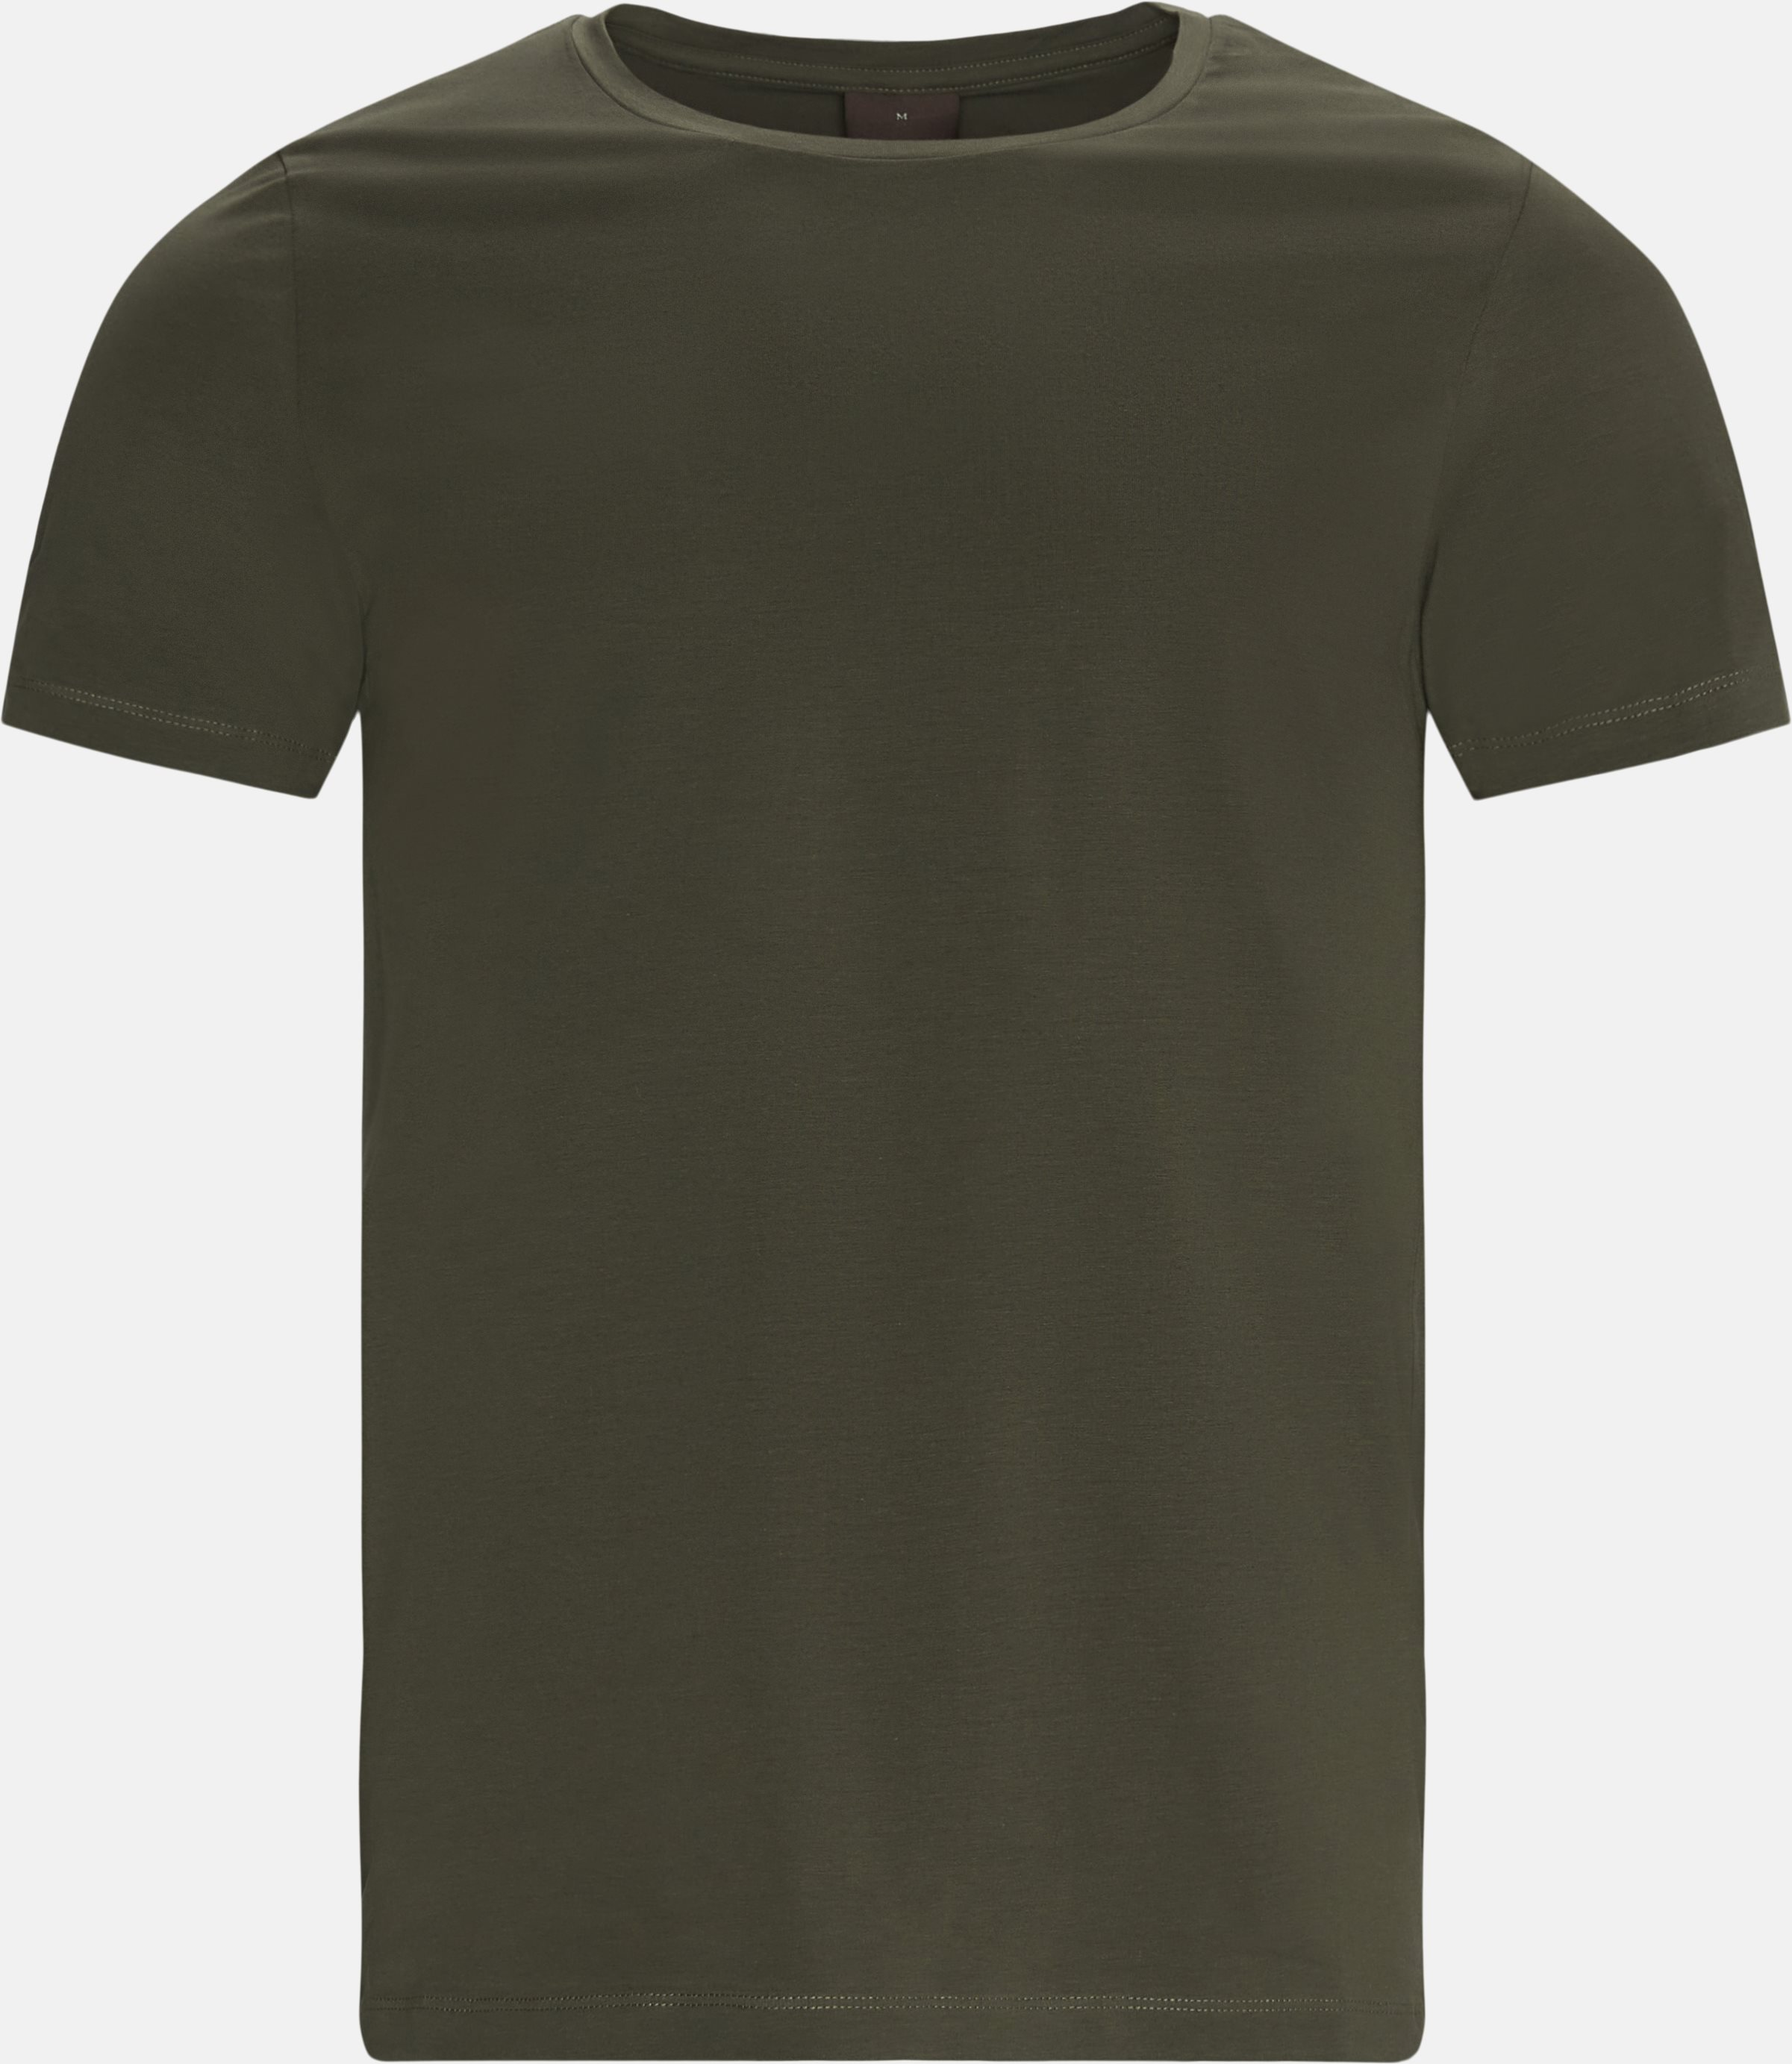 Kyran T-shirt - T-shirts - Regular fit - Army